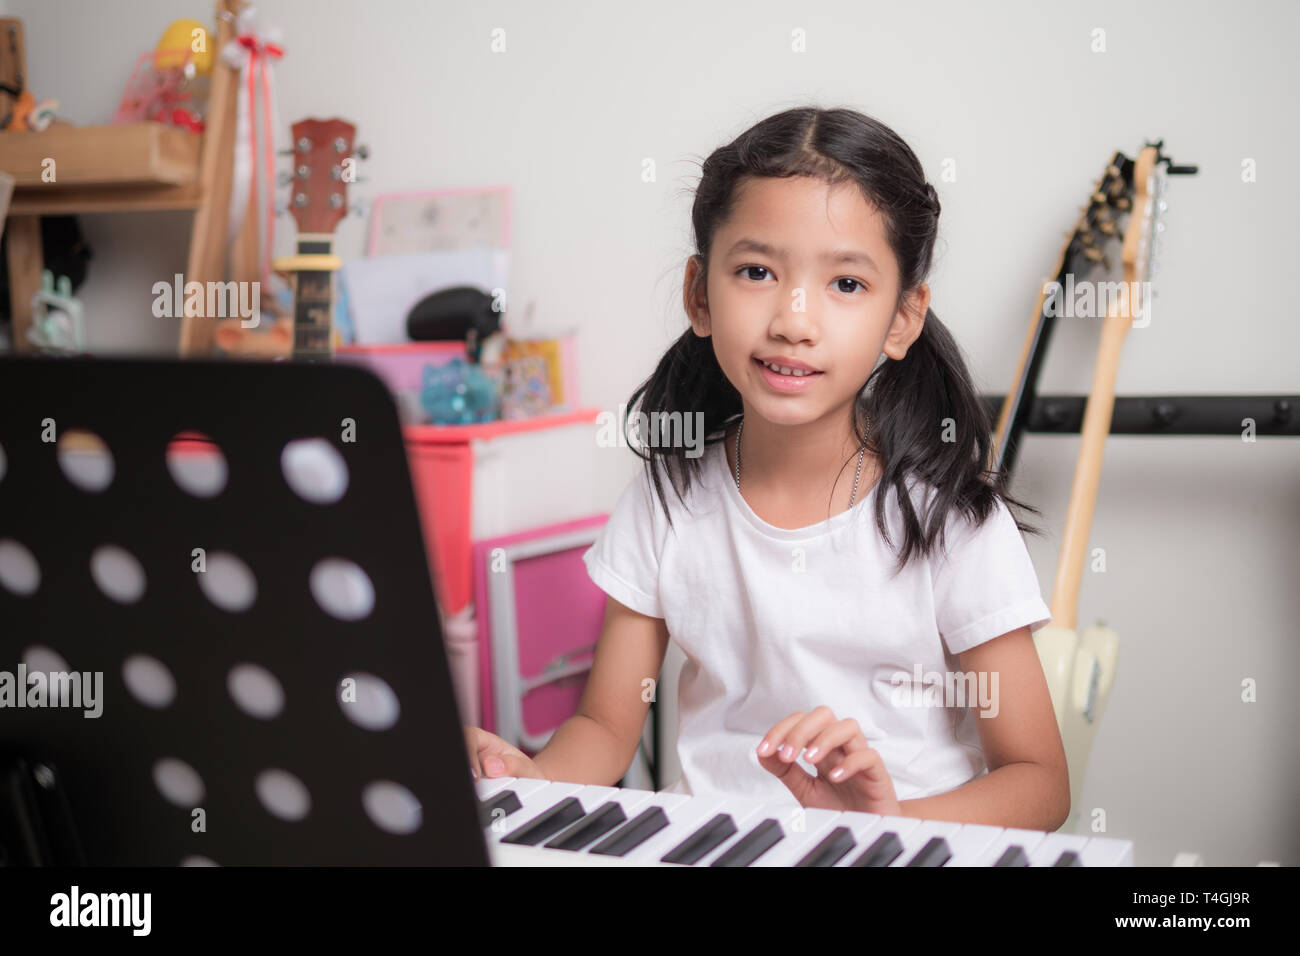 Asian little girl learning to play piano keyboard synthesizer and smile with happiness, Thai girl studying the music at home - Stock Image